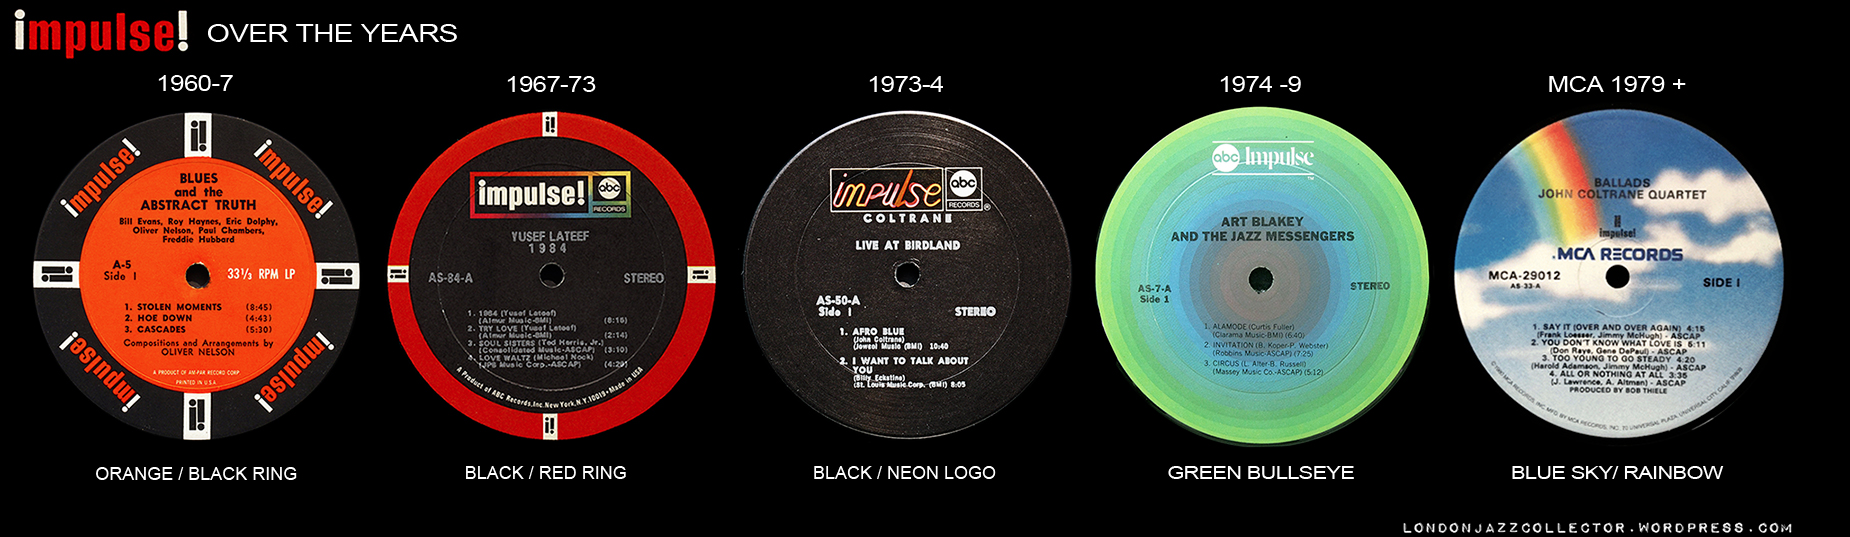 Impulse Us Labels Overview Londonjazzcollector